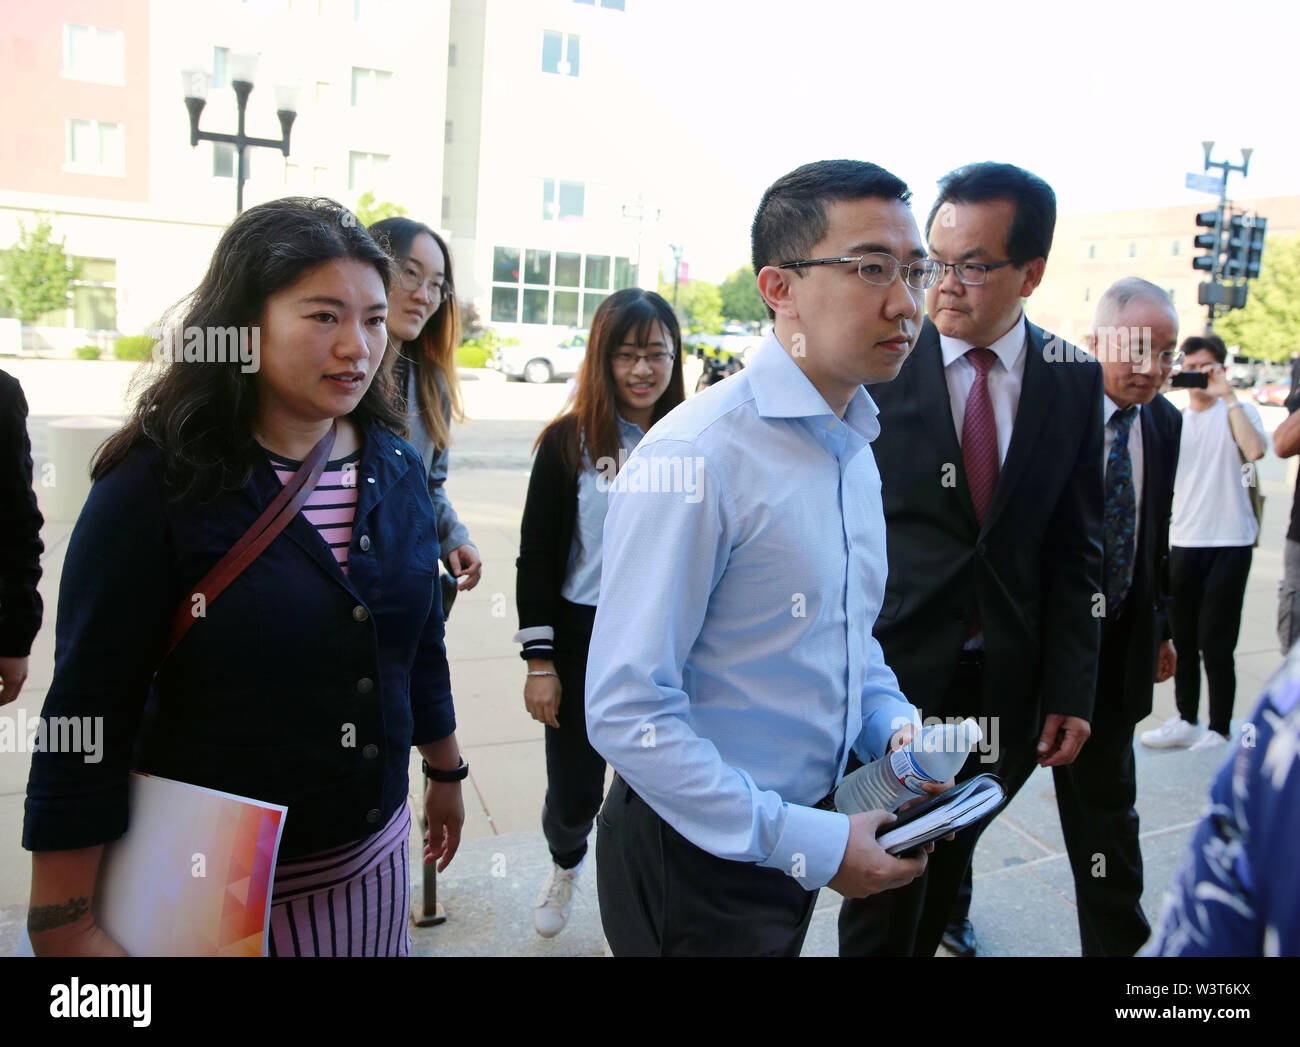 (190717) -- PEORIA (U.S.), July 17, 2019 (Xinhua) -- Family members of visiting Chinese scholar Zhang Yingying head to the federal courthouse building in Peoria, Illinois, the United States, on July 17, 2019. After a U.S. judge concludes all the evidence from the sentencing phase in the Chinese scholar slaying trial Tuesday, closing arguments from both prosecutors and the defense started here Wednesday morning. The closing arguments of the sentencing phase for Brendt Christensen who was found guilty of killing Zhang Yingying in 2017 took place around 9 a.m.(1400 GMT) at a federal court of Peor - Stock Image